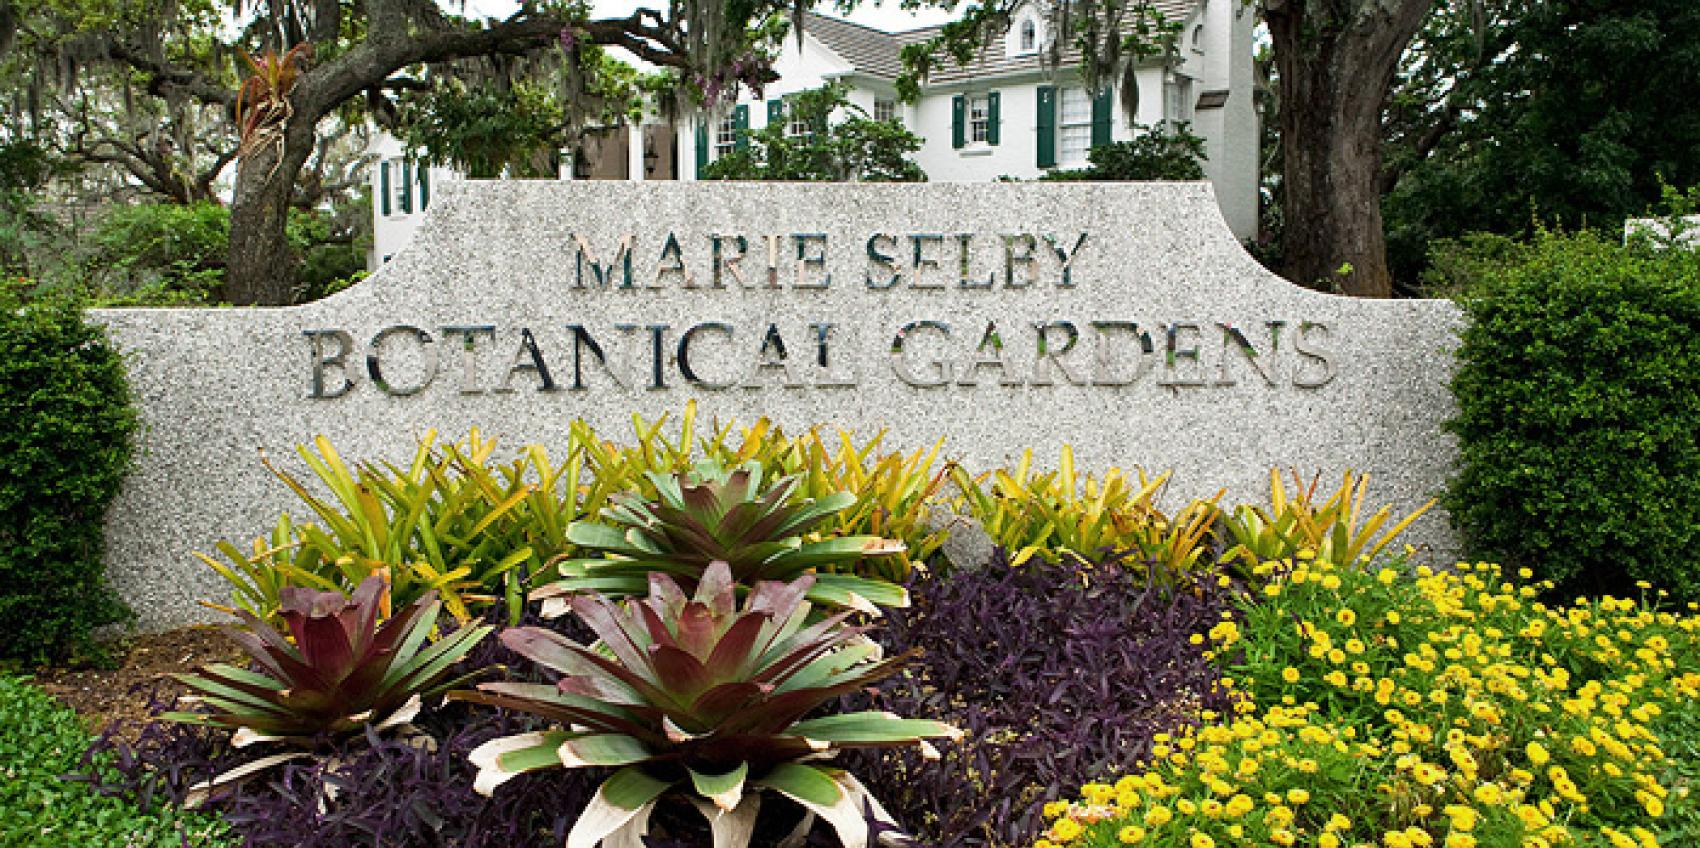 Charmant Marie Selby Botanical Gardens Is The Only Botanical Garden In The World  Dedicated To The Display And Study Of Orchids, Bromeliads, Gesneriads,  Epiphytes And ...